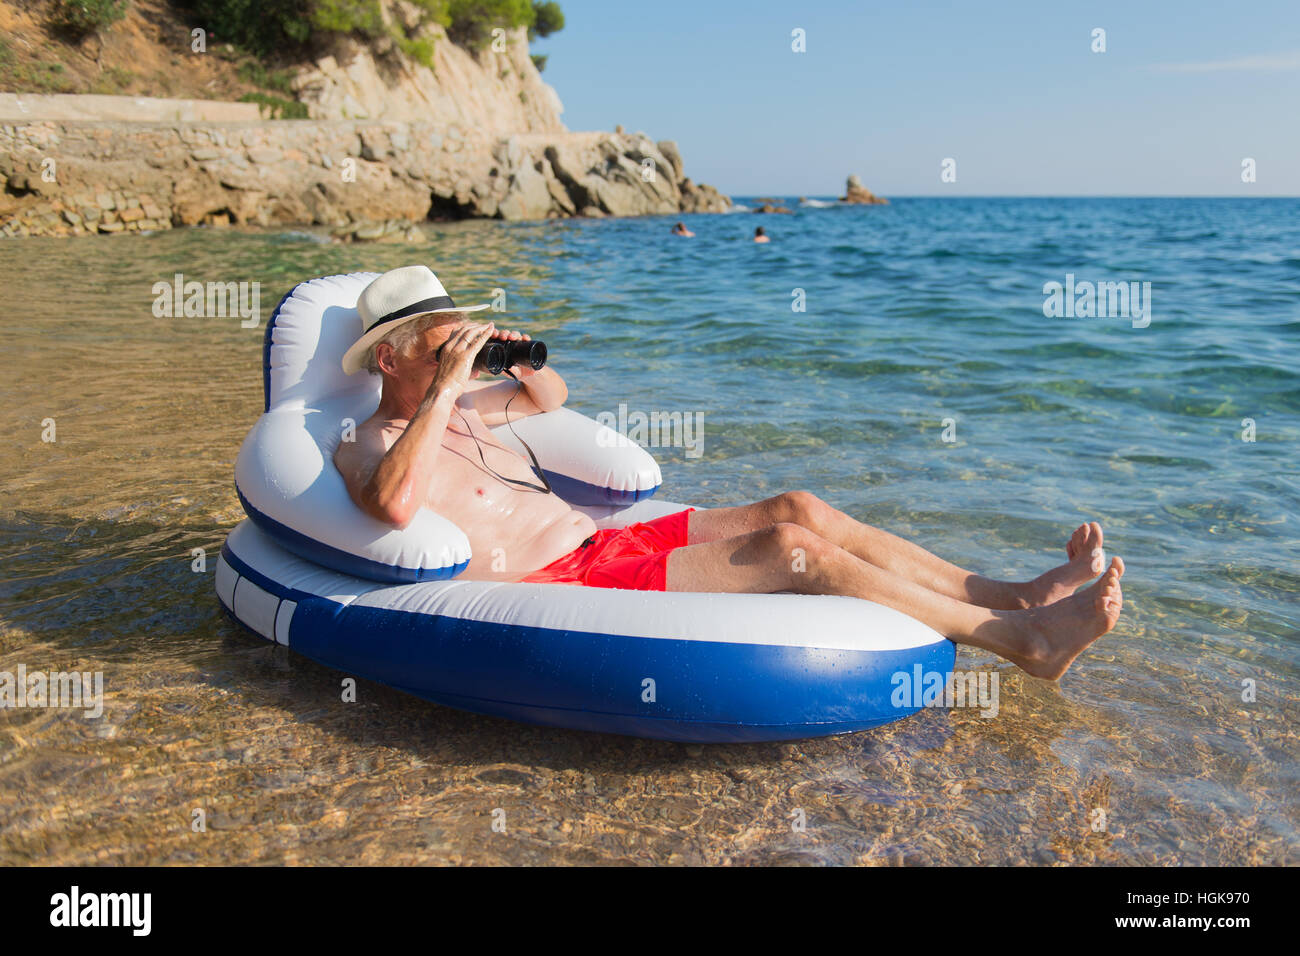 Senior man with spy glasses floating on chair in the sea - Stock Image